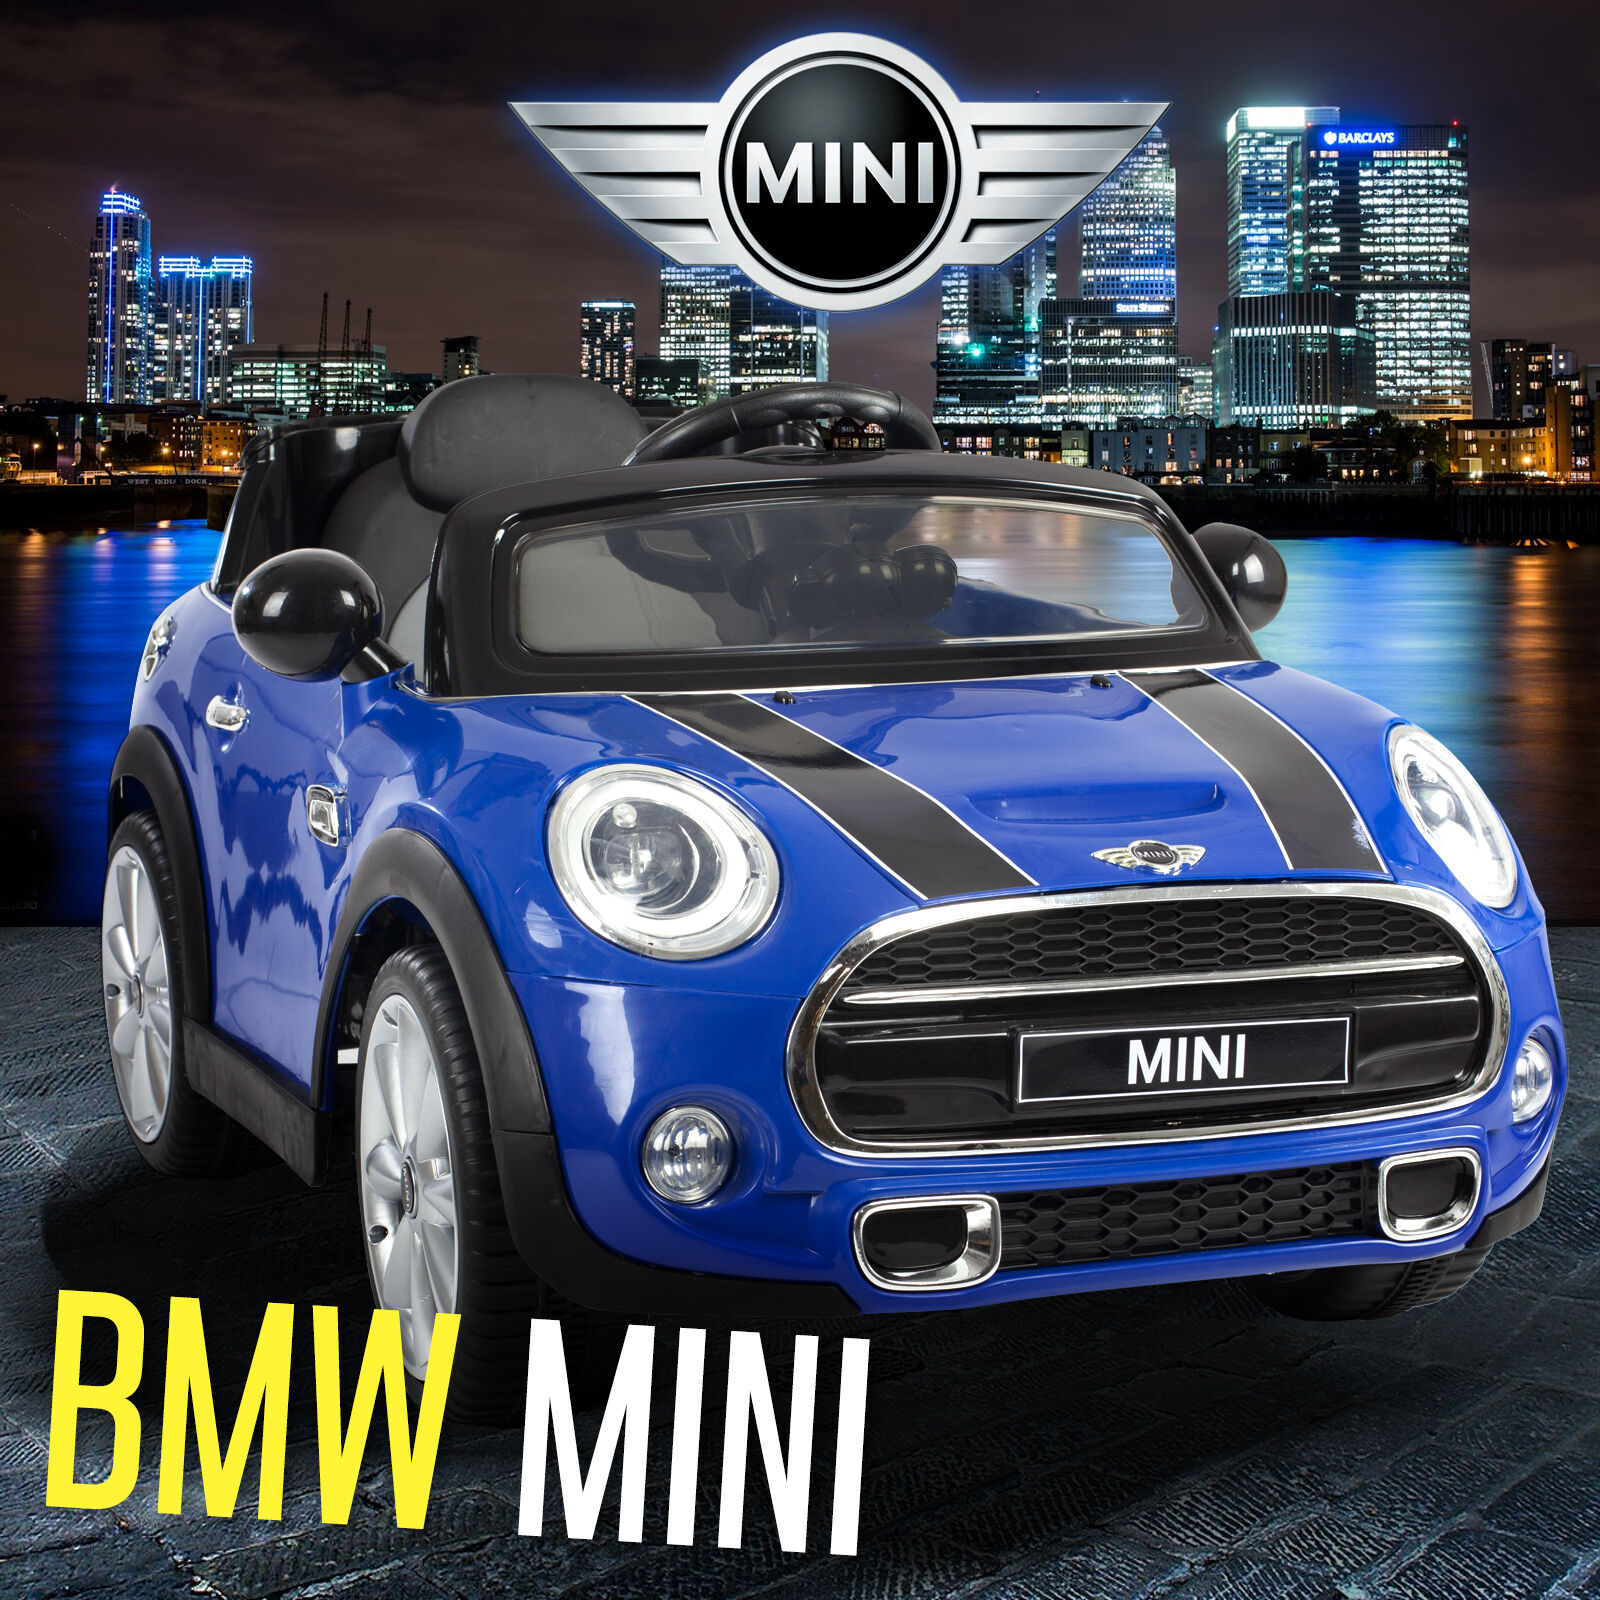 mini cooper s kids ride on car 12v battery 2x motor remote control cars licensed eur 135 77. Black Bedroom Furniture Sets. Home Design Ideas